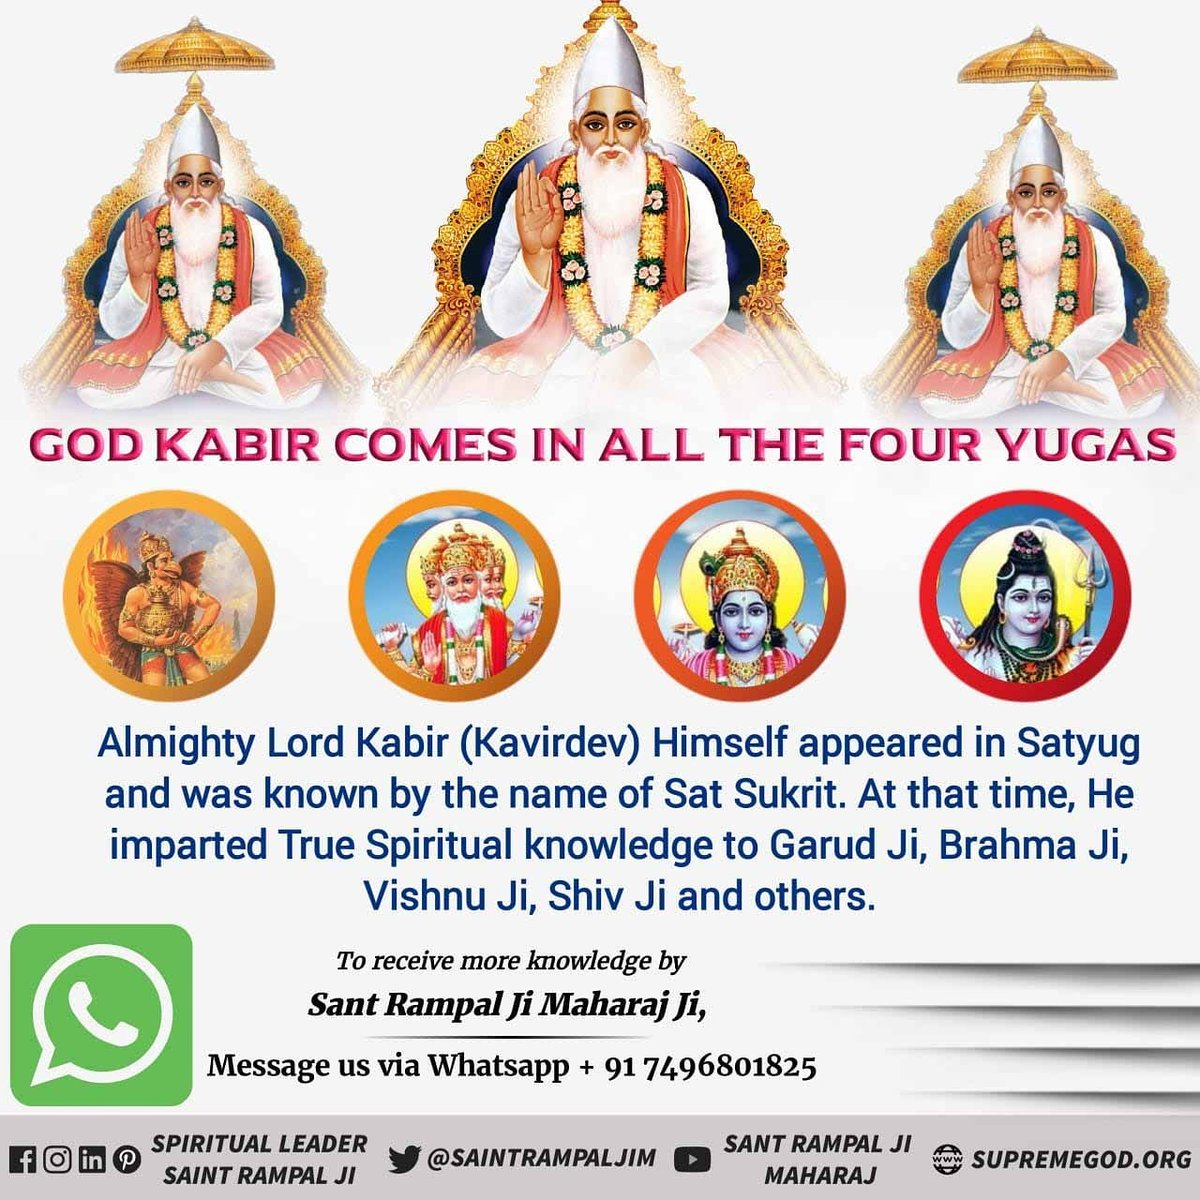 Supreme God Kabir appears whenever He wishes; He never takes birth from a mother because He is the Originator of all. He is the liberator of the world - Saint Rampal Ji Maharaj  #ThursdayThoughts  #GodMorningThursday